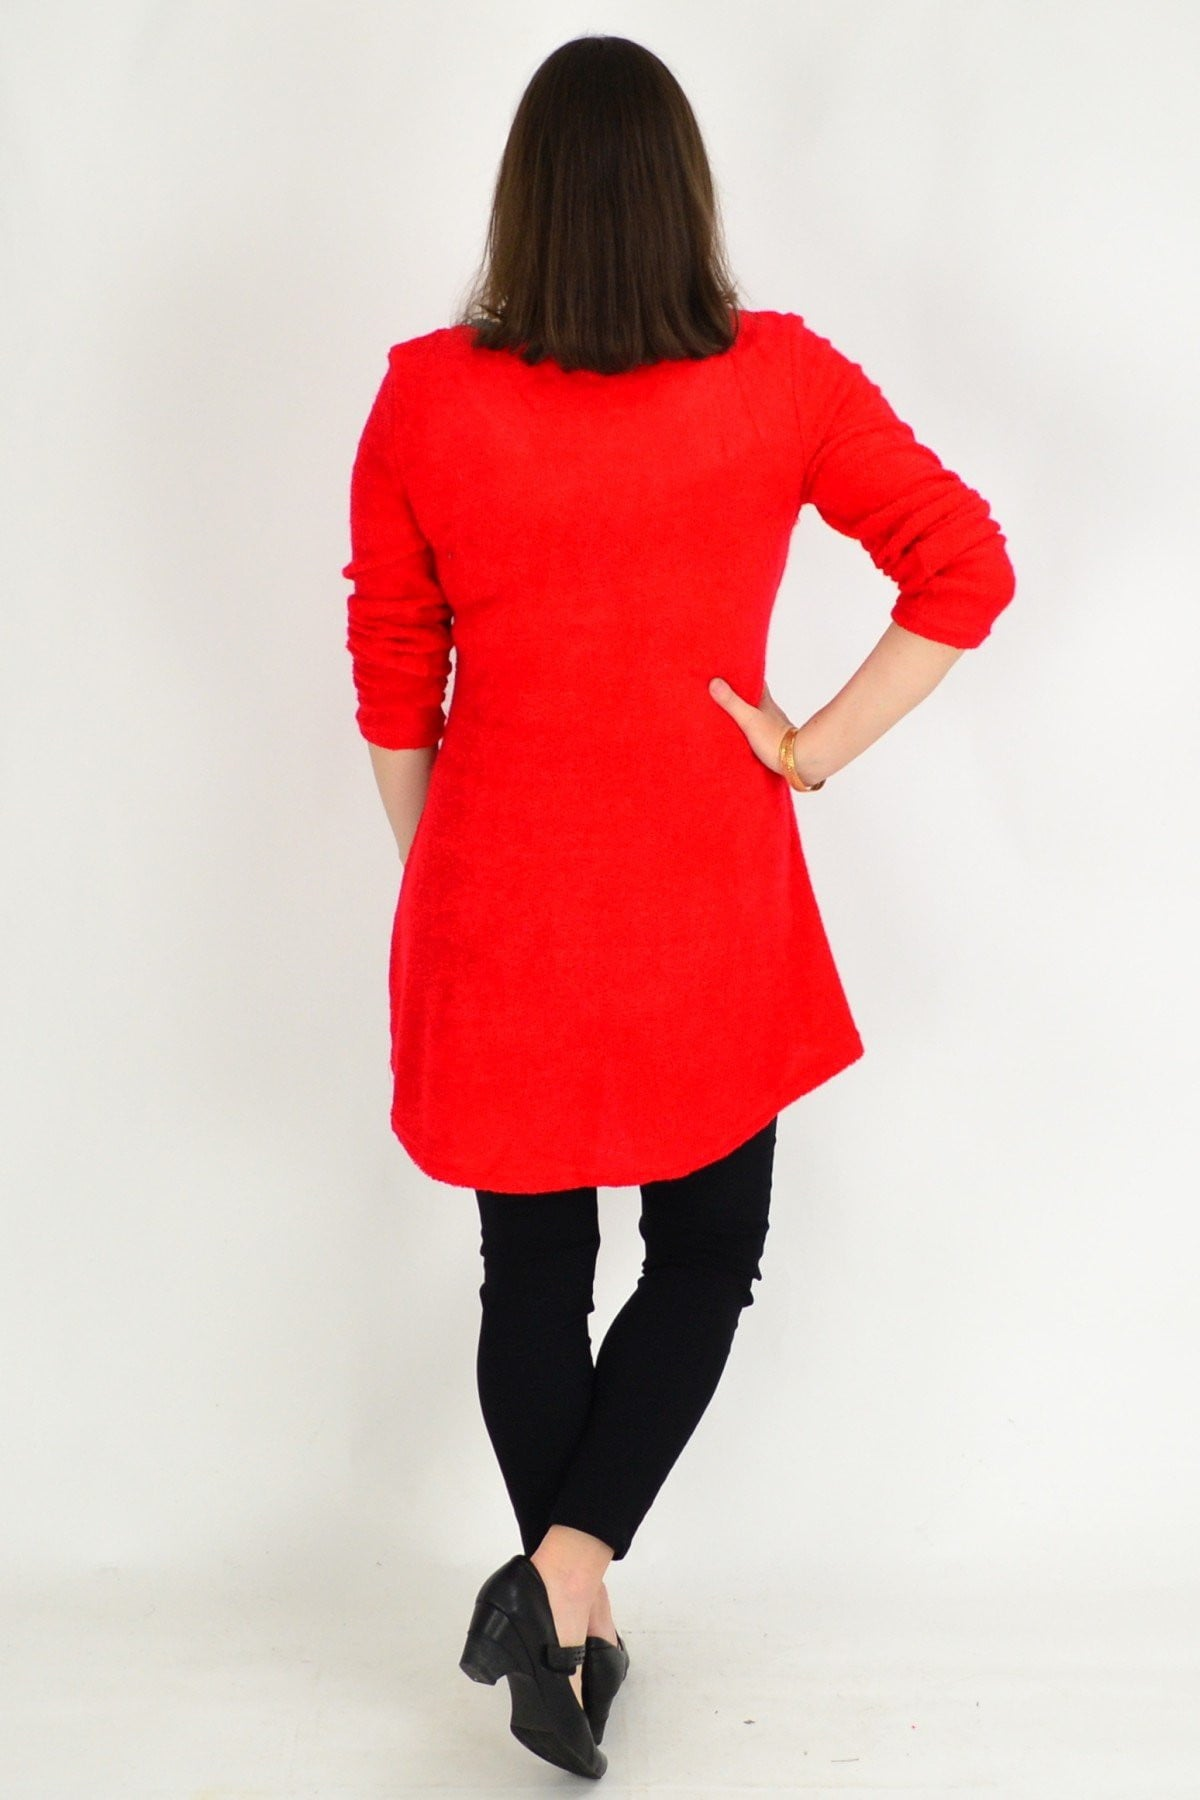 Red Woven Long Sleeve Winter Tunic Top | I Love Tunics | Tunic Tops | Tunic | Tunic Dresses  | womens clothing online